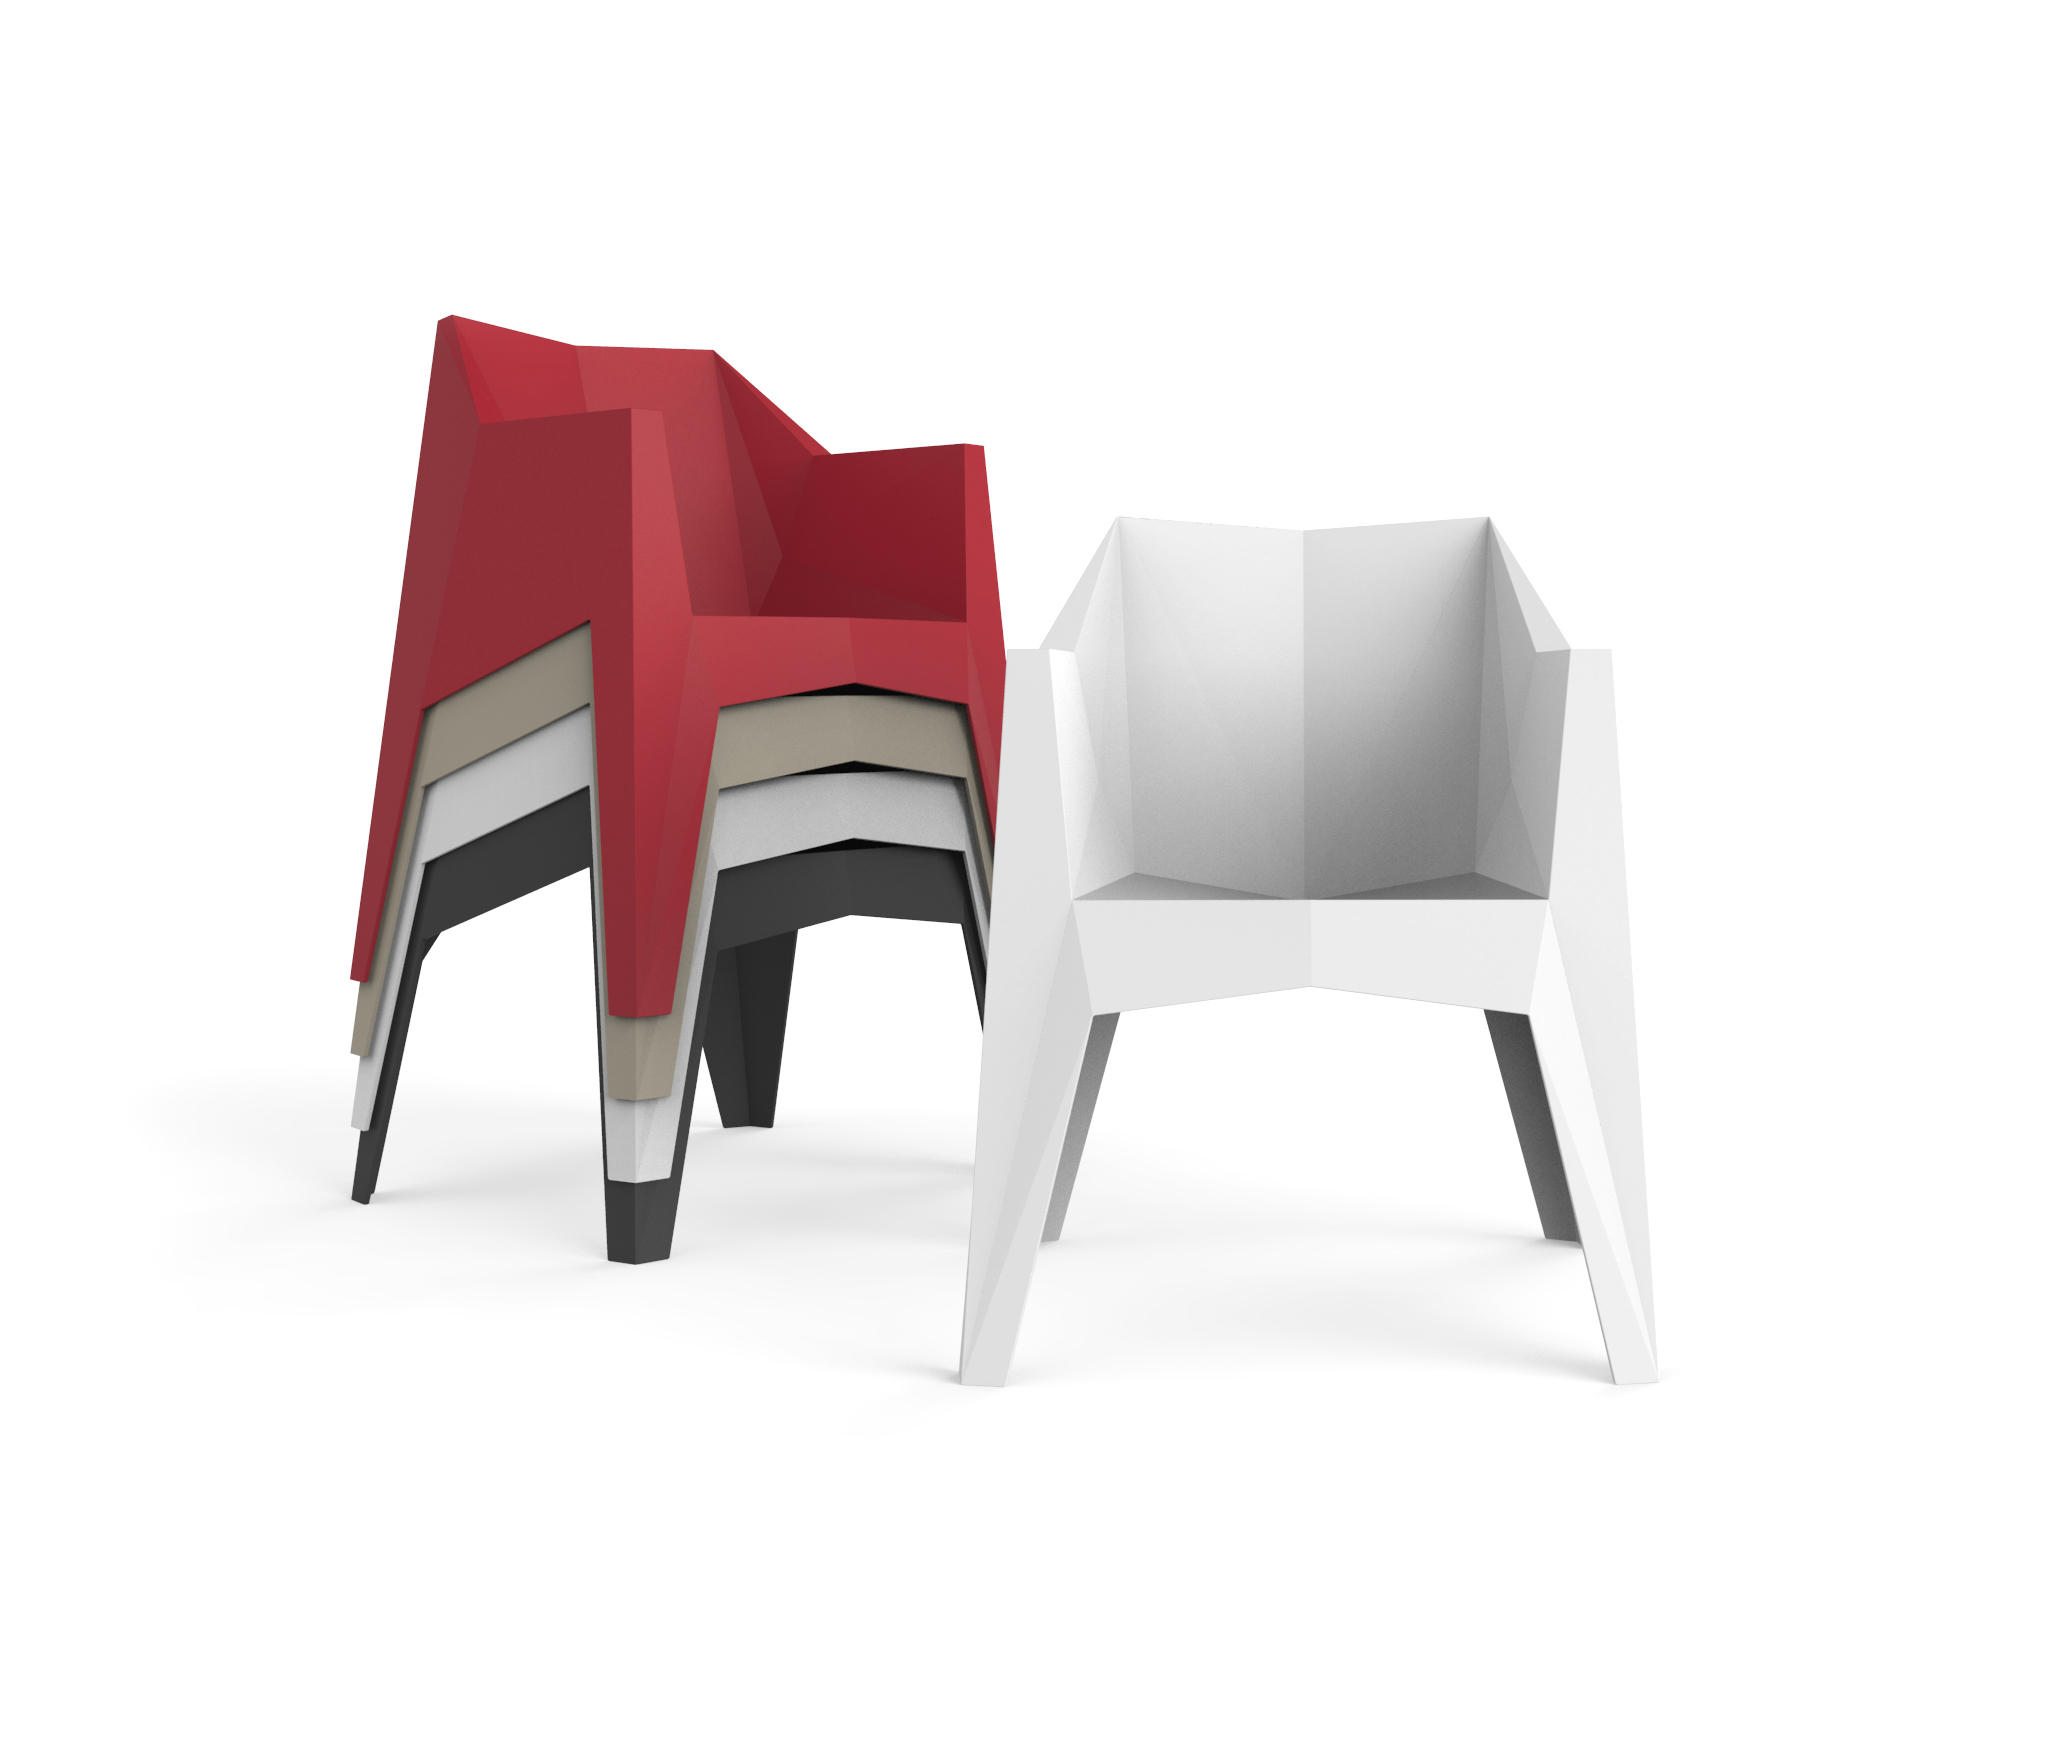 VOXEL STREET CHAIR Restaurant chairs from Vondom